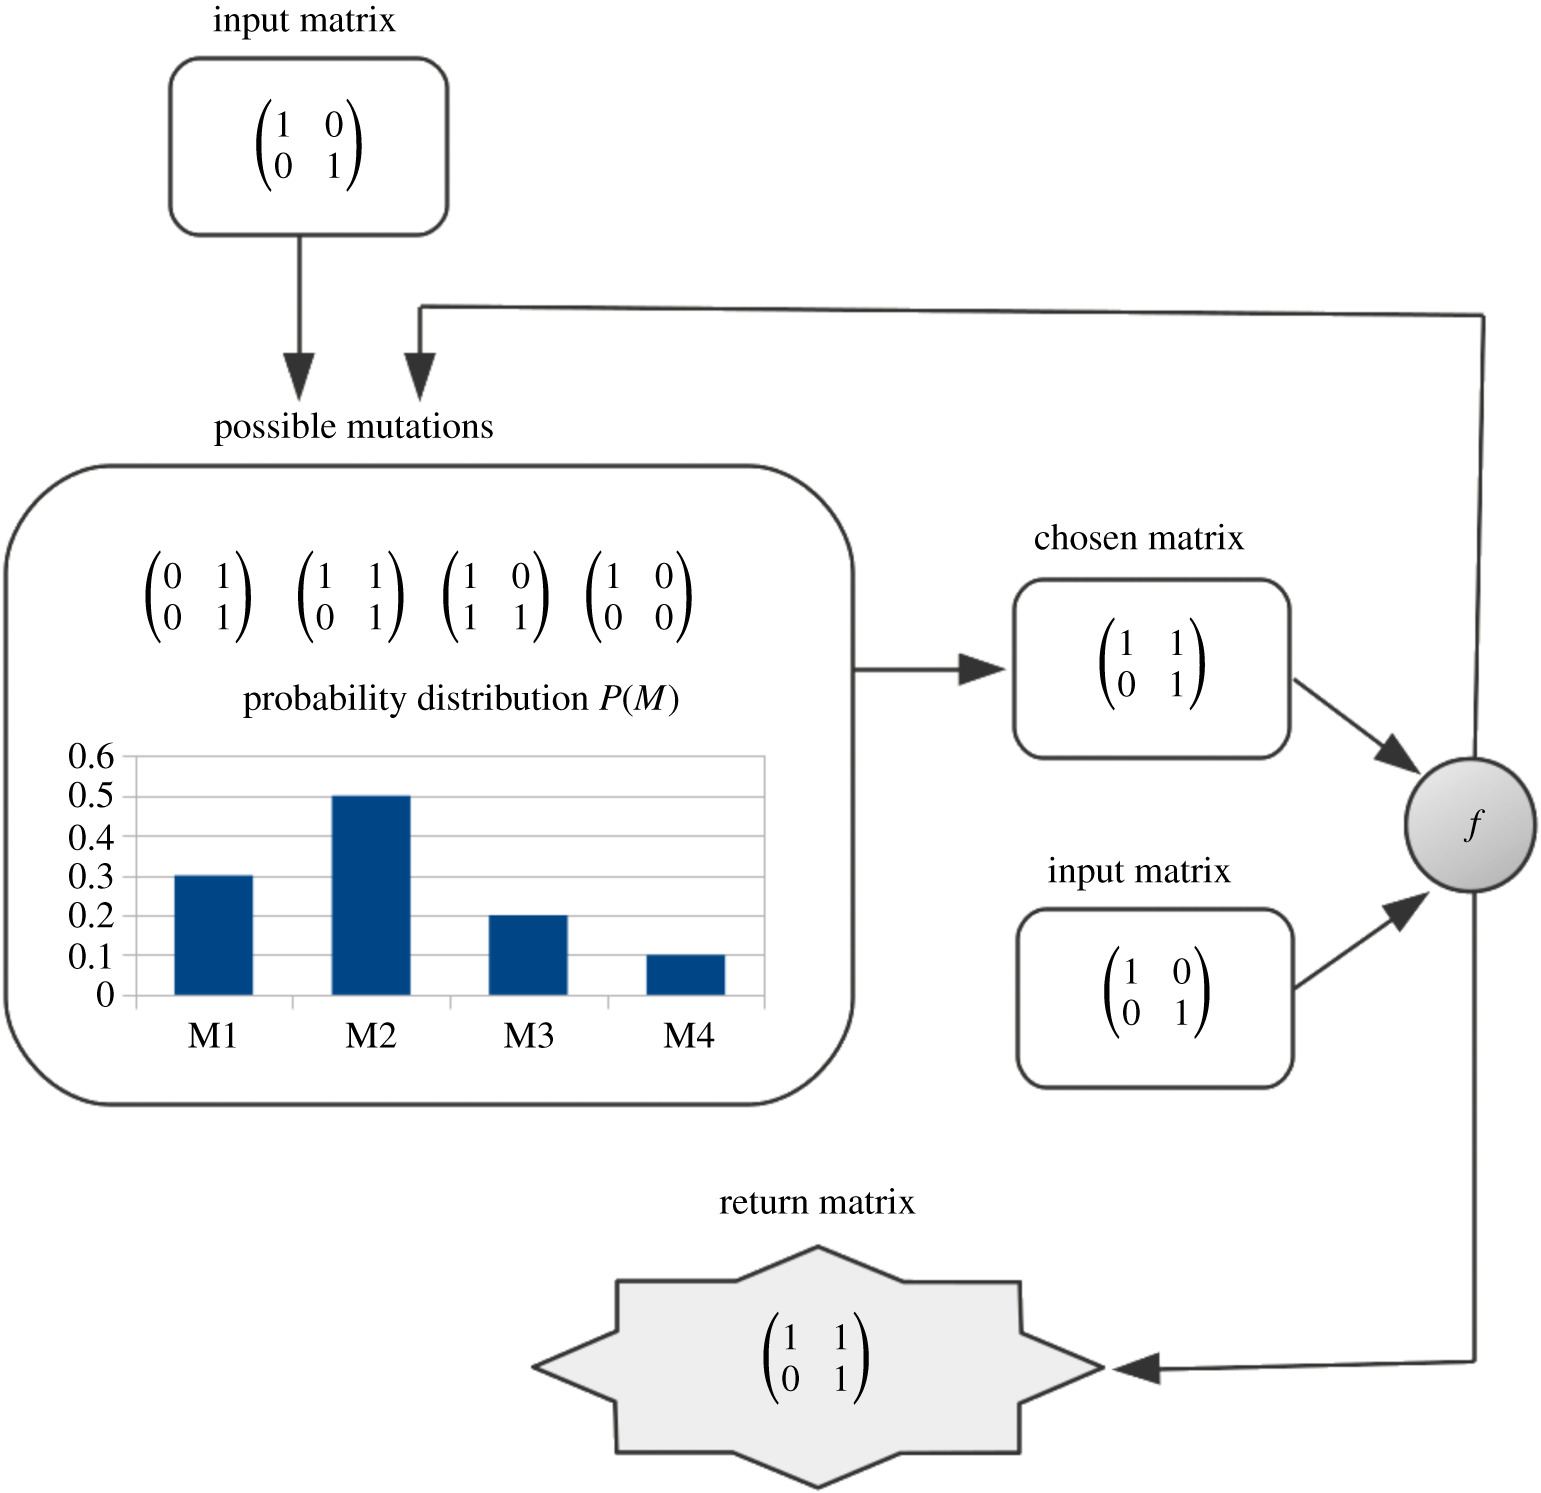 Algorithmically probable mutations reproduce aspects of evolution